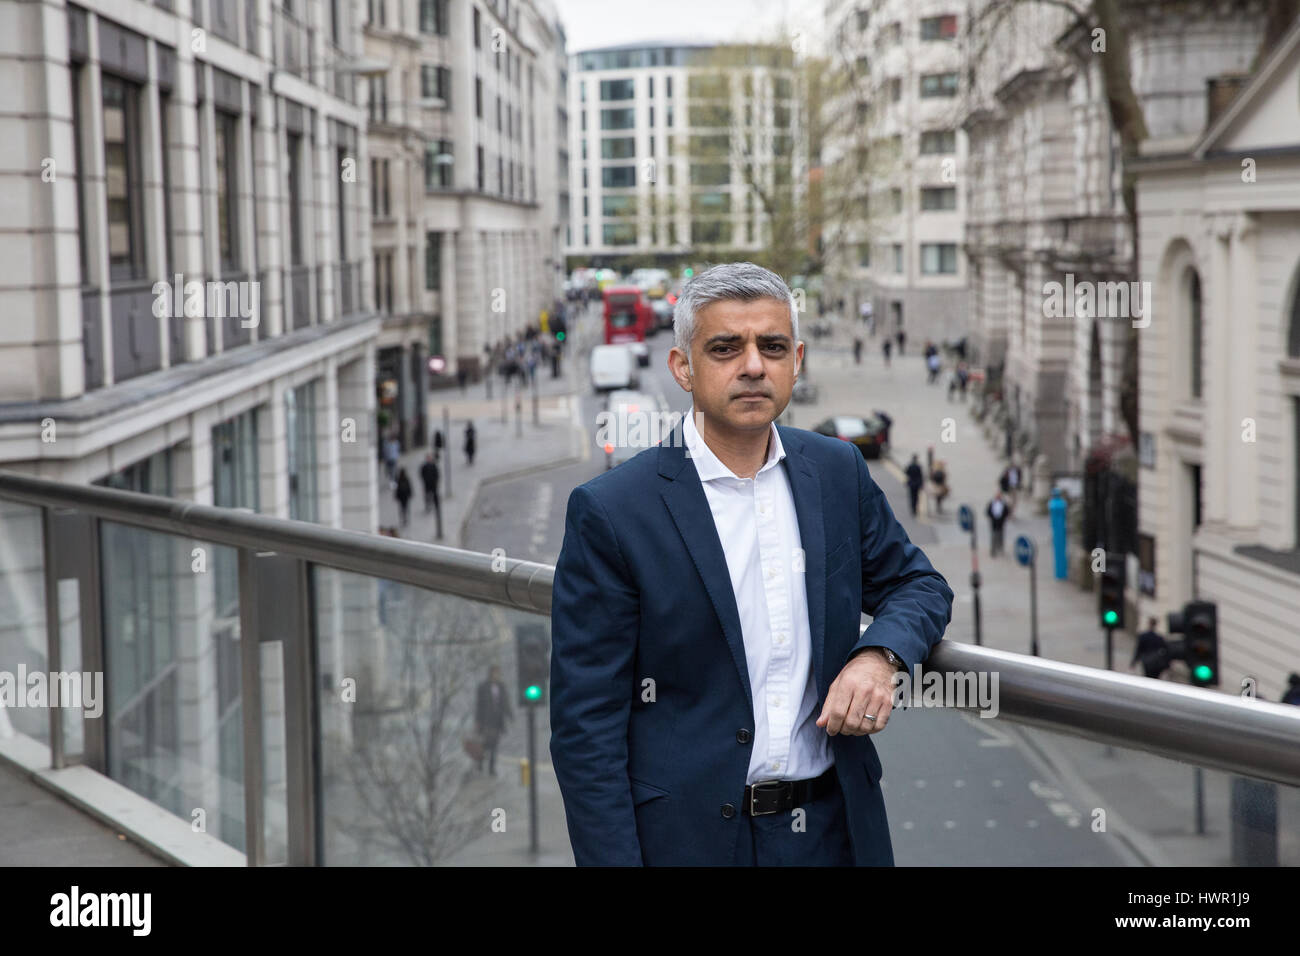 London, UK. 4th Apr, 2017. The Mayor of London Sadiq Khan announces planned dates for the introduction of the world's - Stock Image